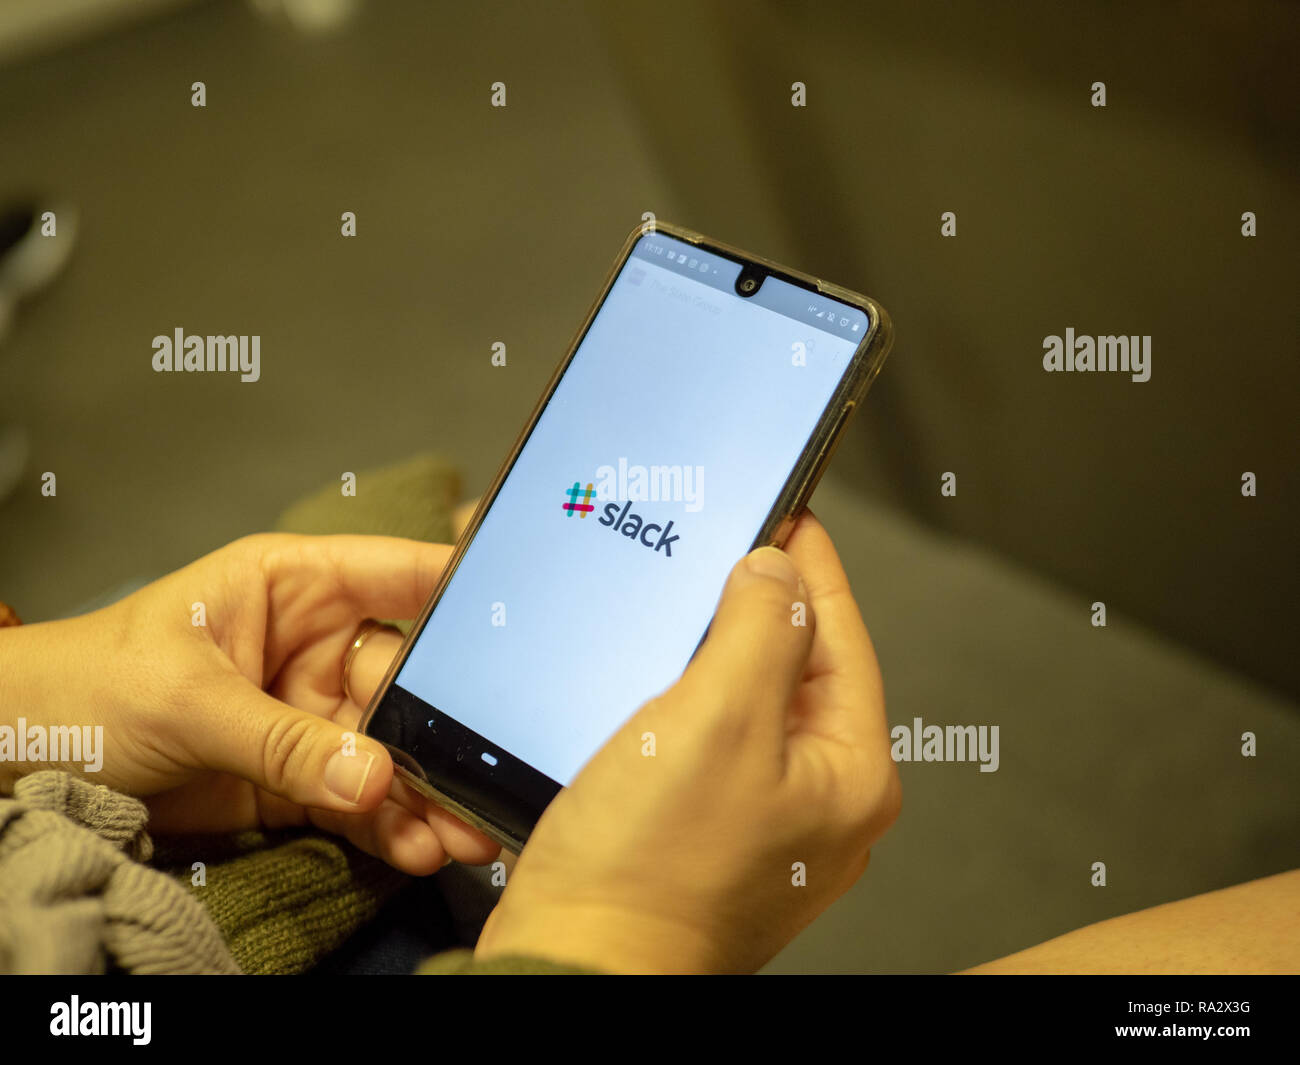 Woman opening Slack mobile communication app with logo on Android screen while commuting on subway train - Stock Image